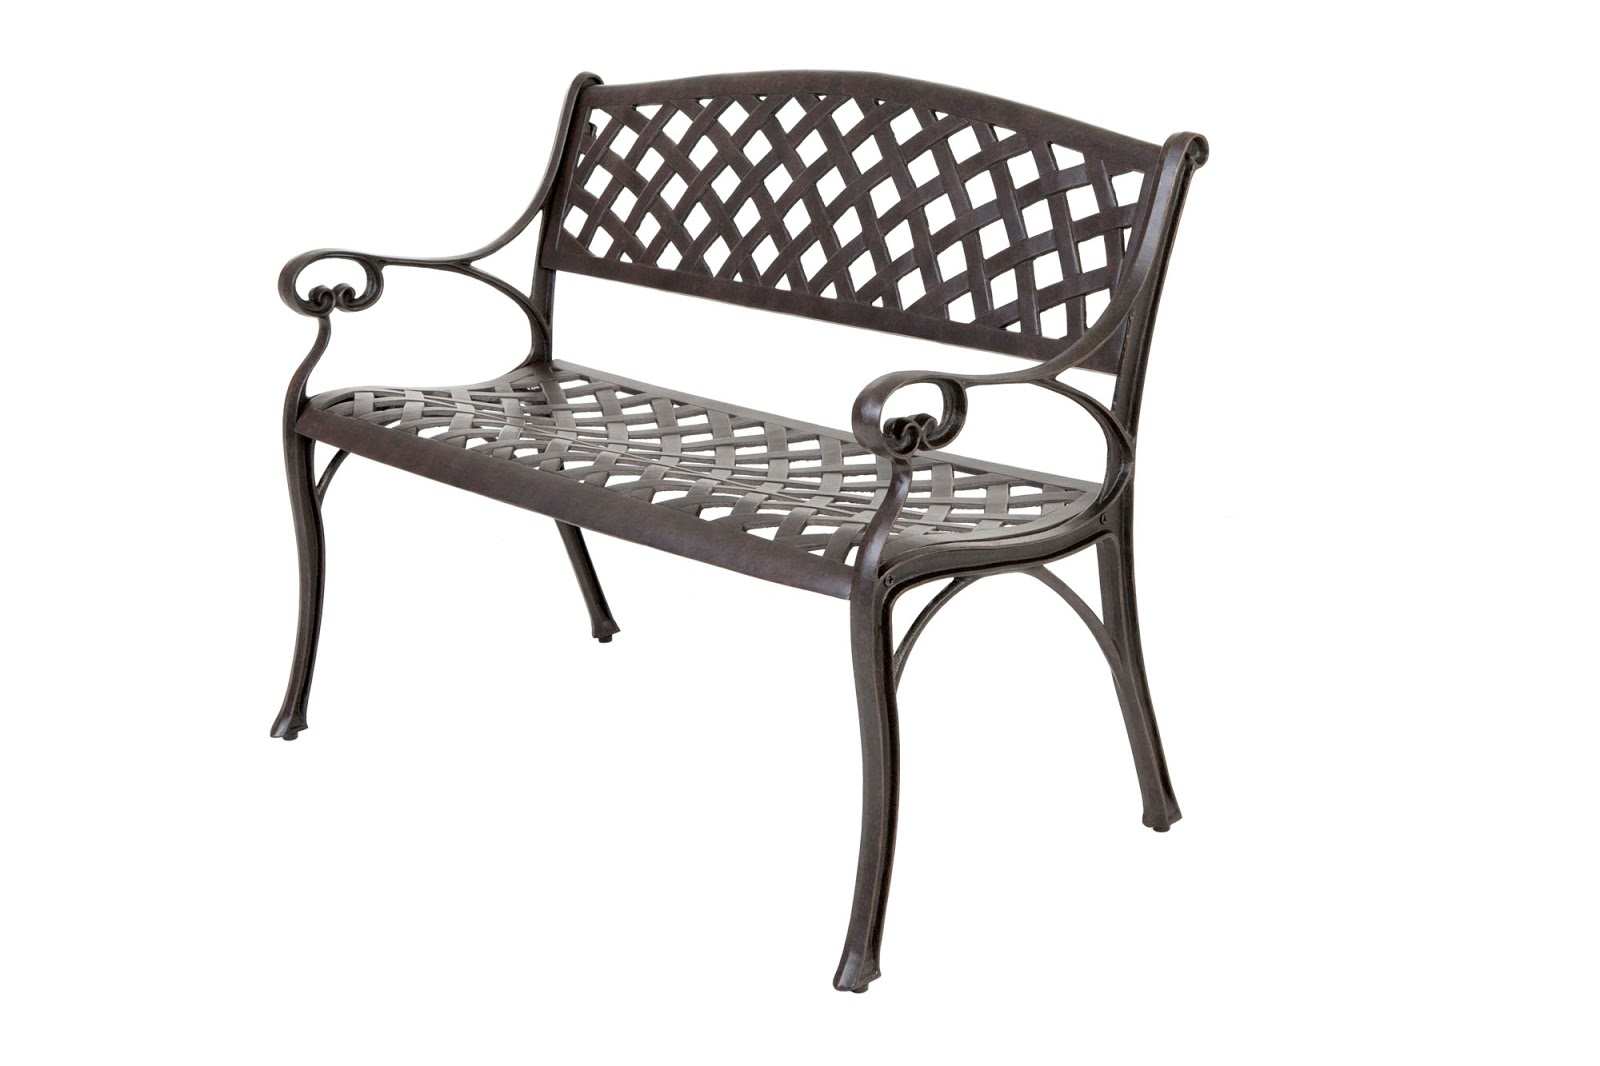 Outside Edge Garden Furniture Blog Free Cast Aluminium Garden Bistro Set or